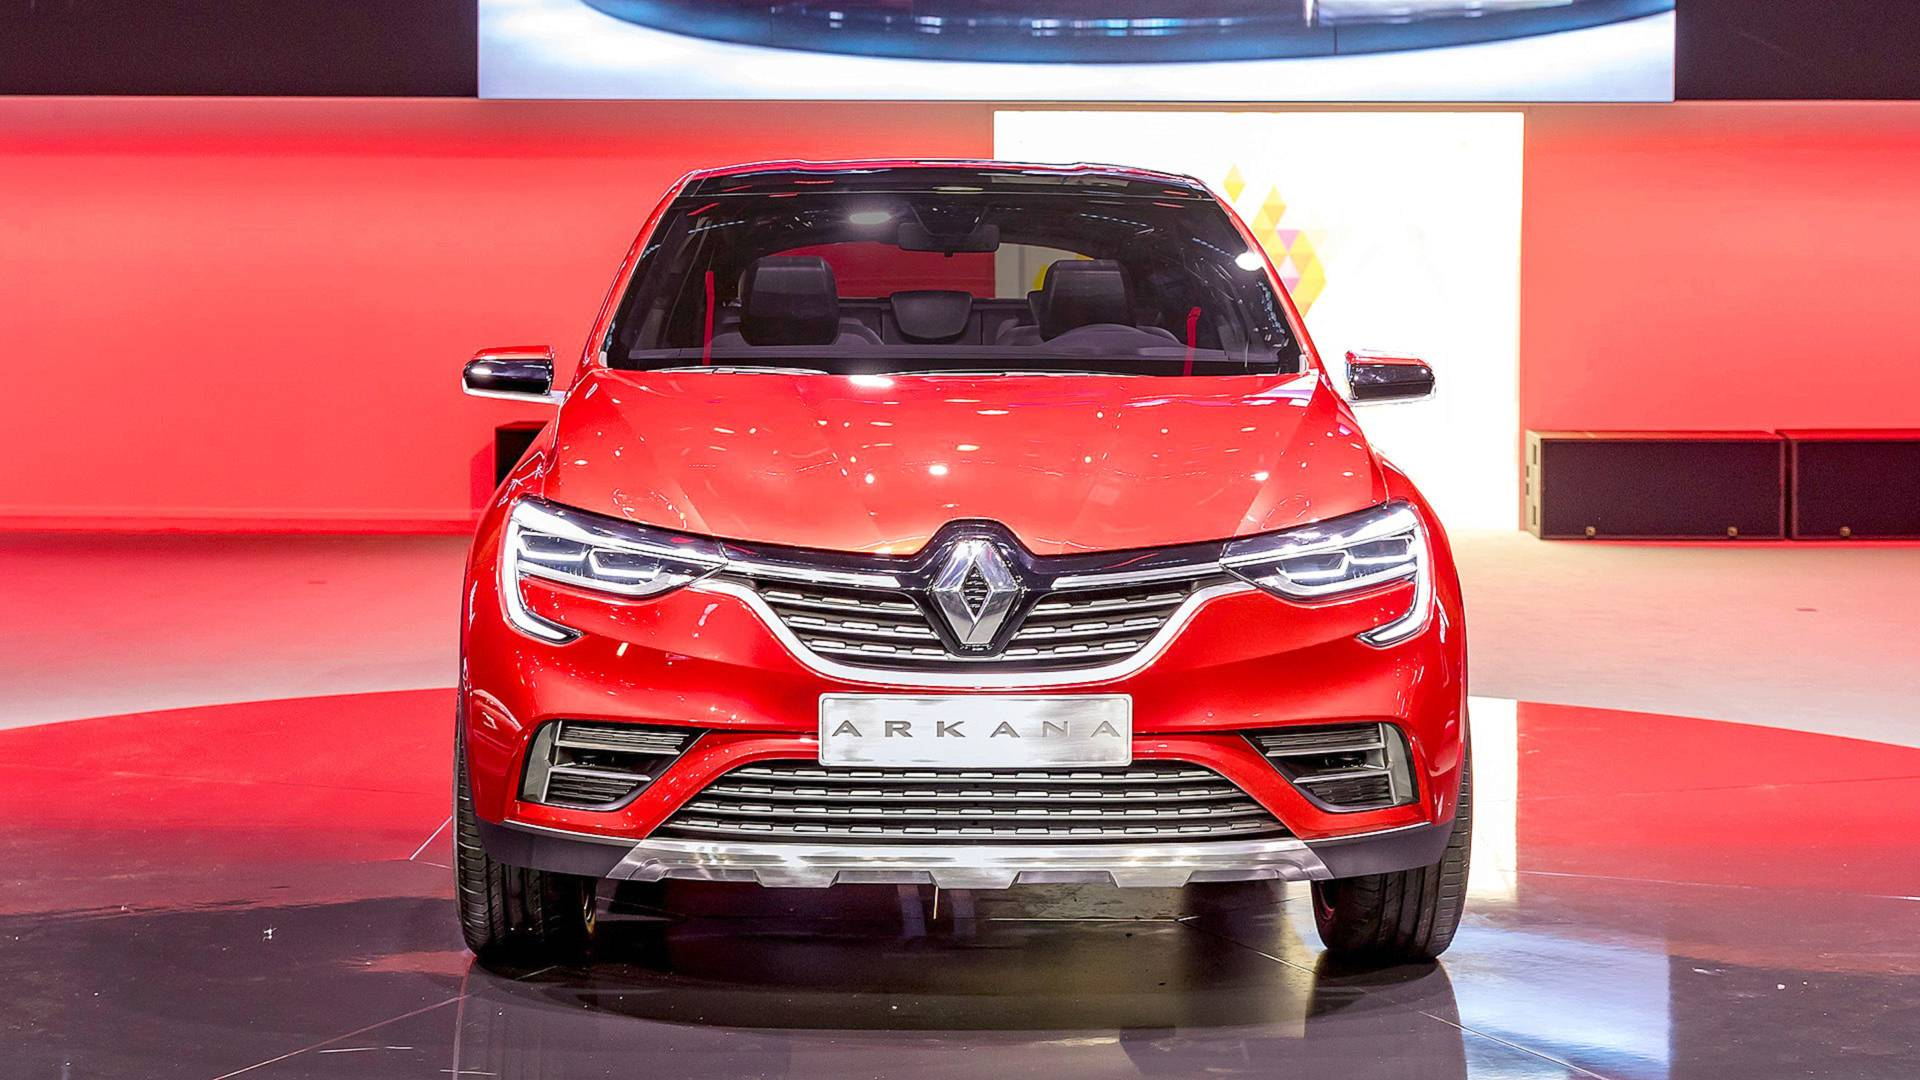 Renault Arkana Revealed at 2018 Moscow International Motor Show 2